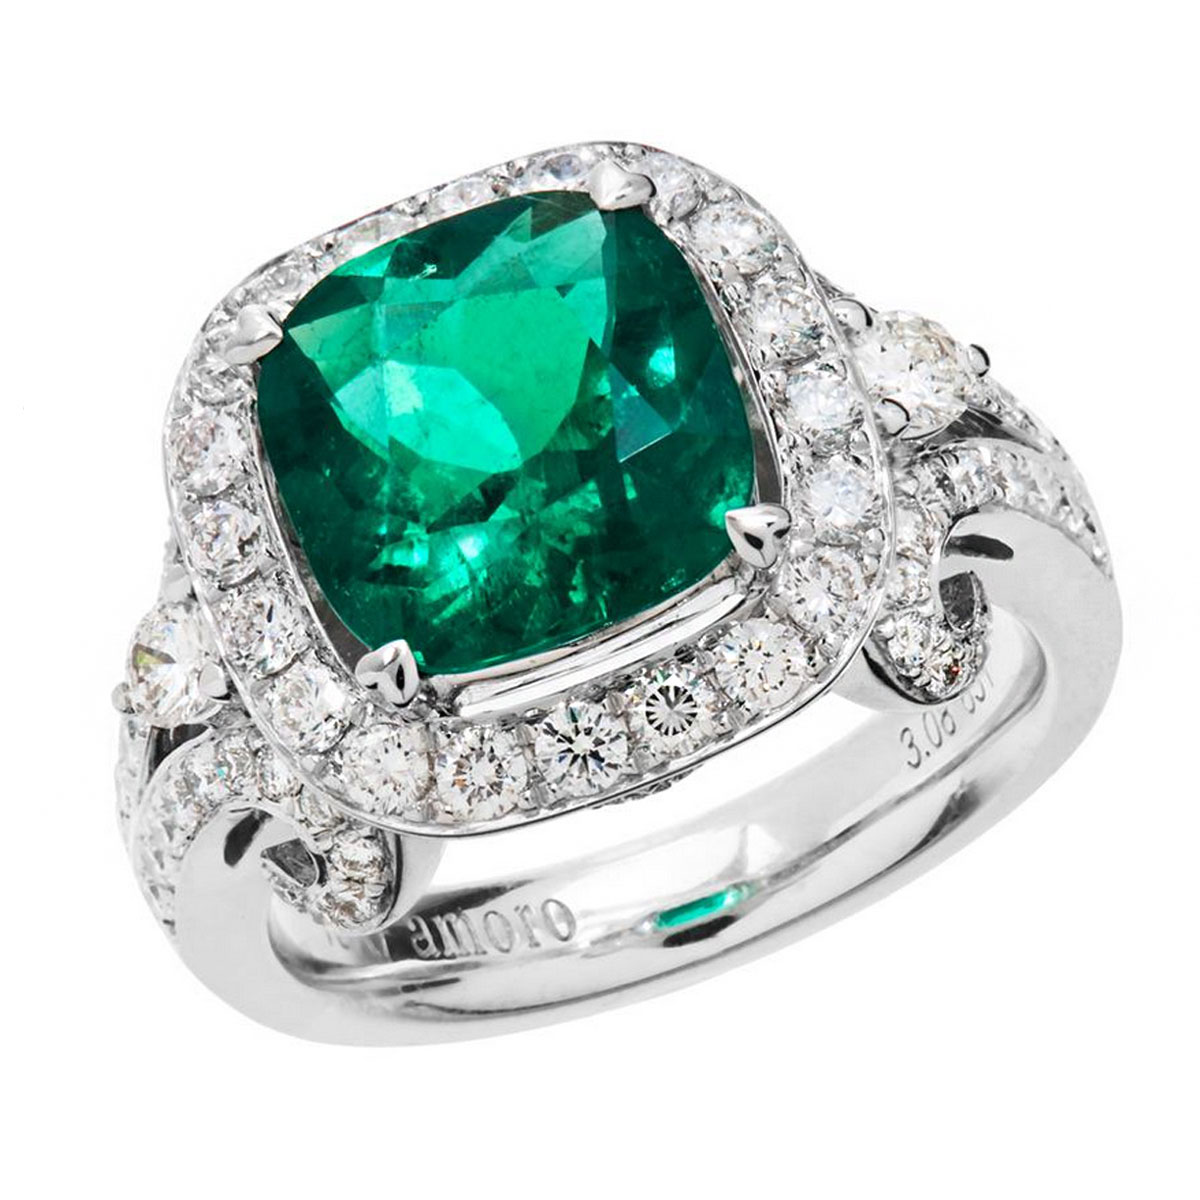 Amoro 18k White Gold 308 Colombian Emerald Diamond Ring